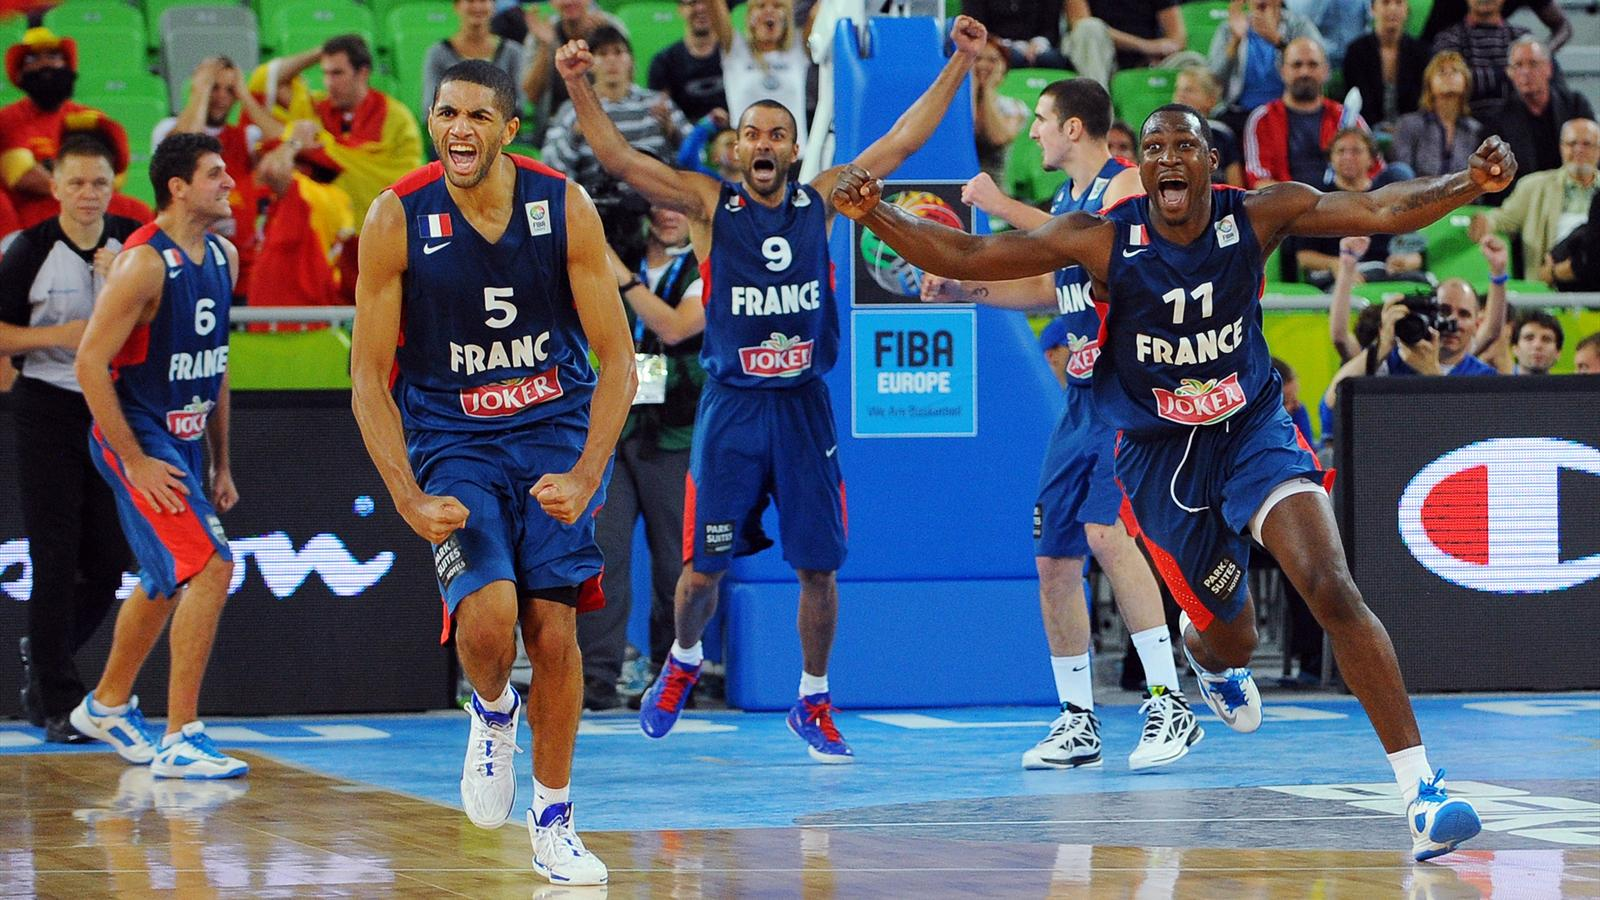 Match Basket France Serbie en direct live streaming